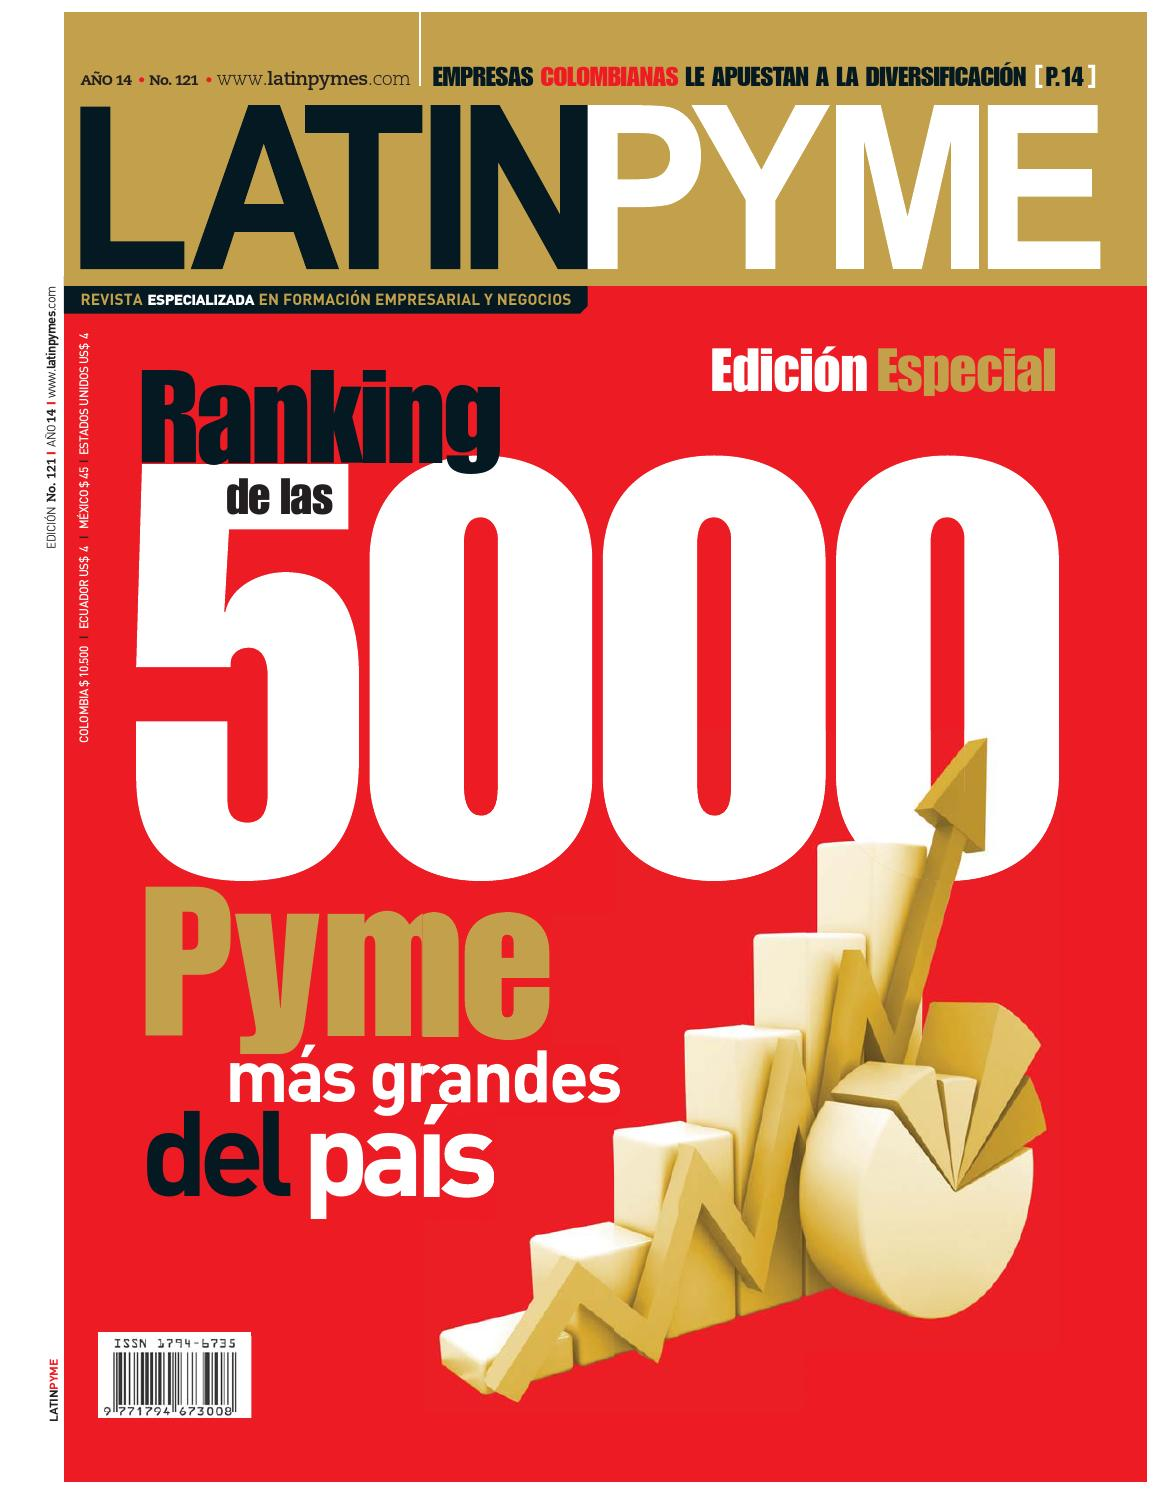 Revista latinpyme N.121 by LATINPYME - issuu ec0a4bcb108f